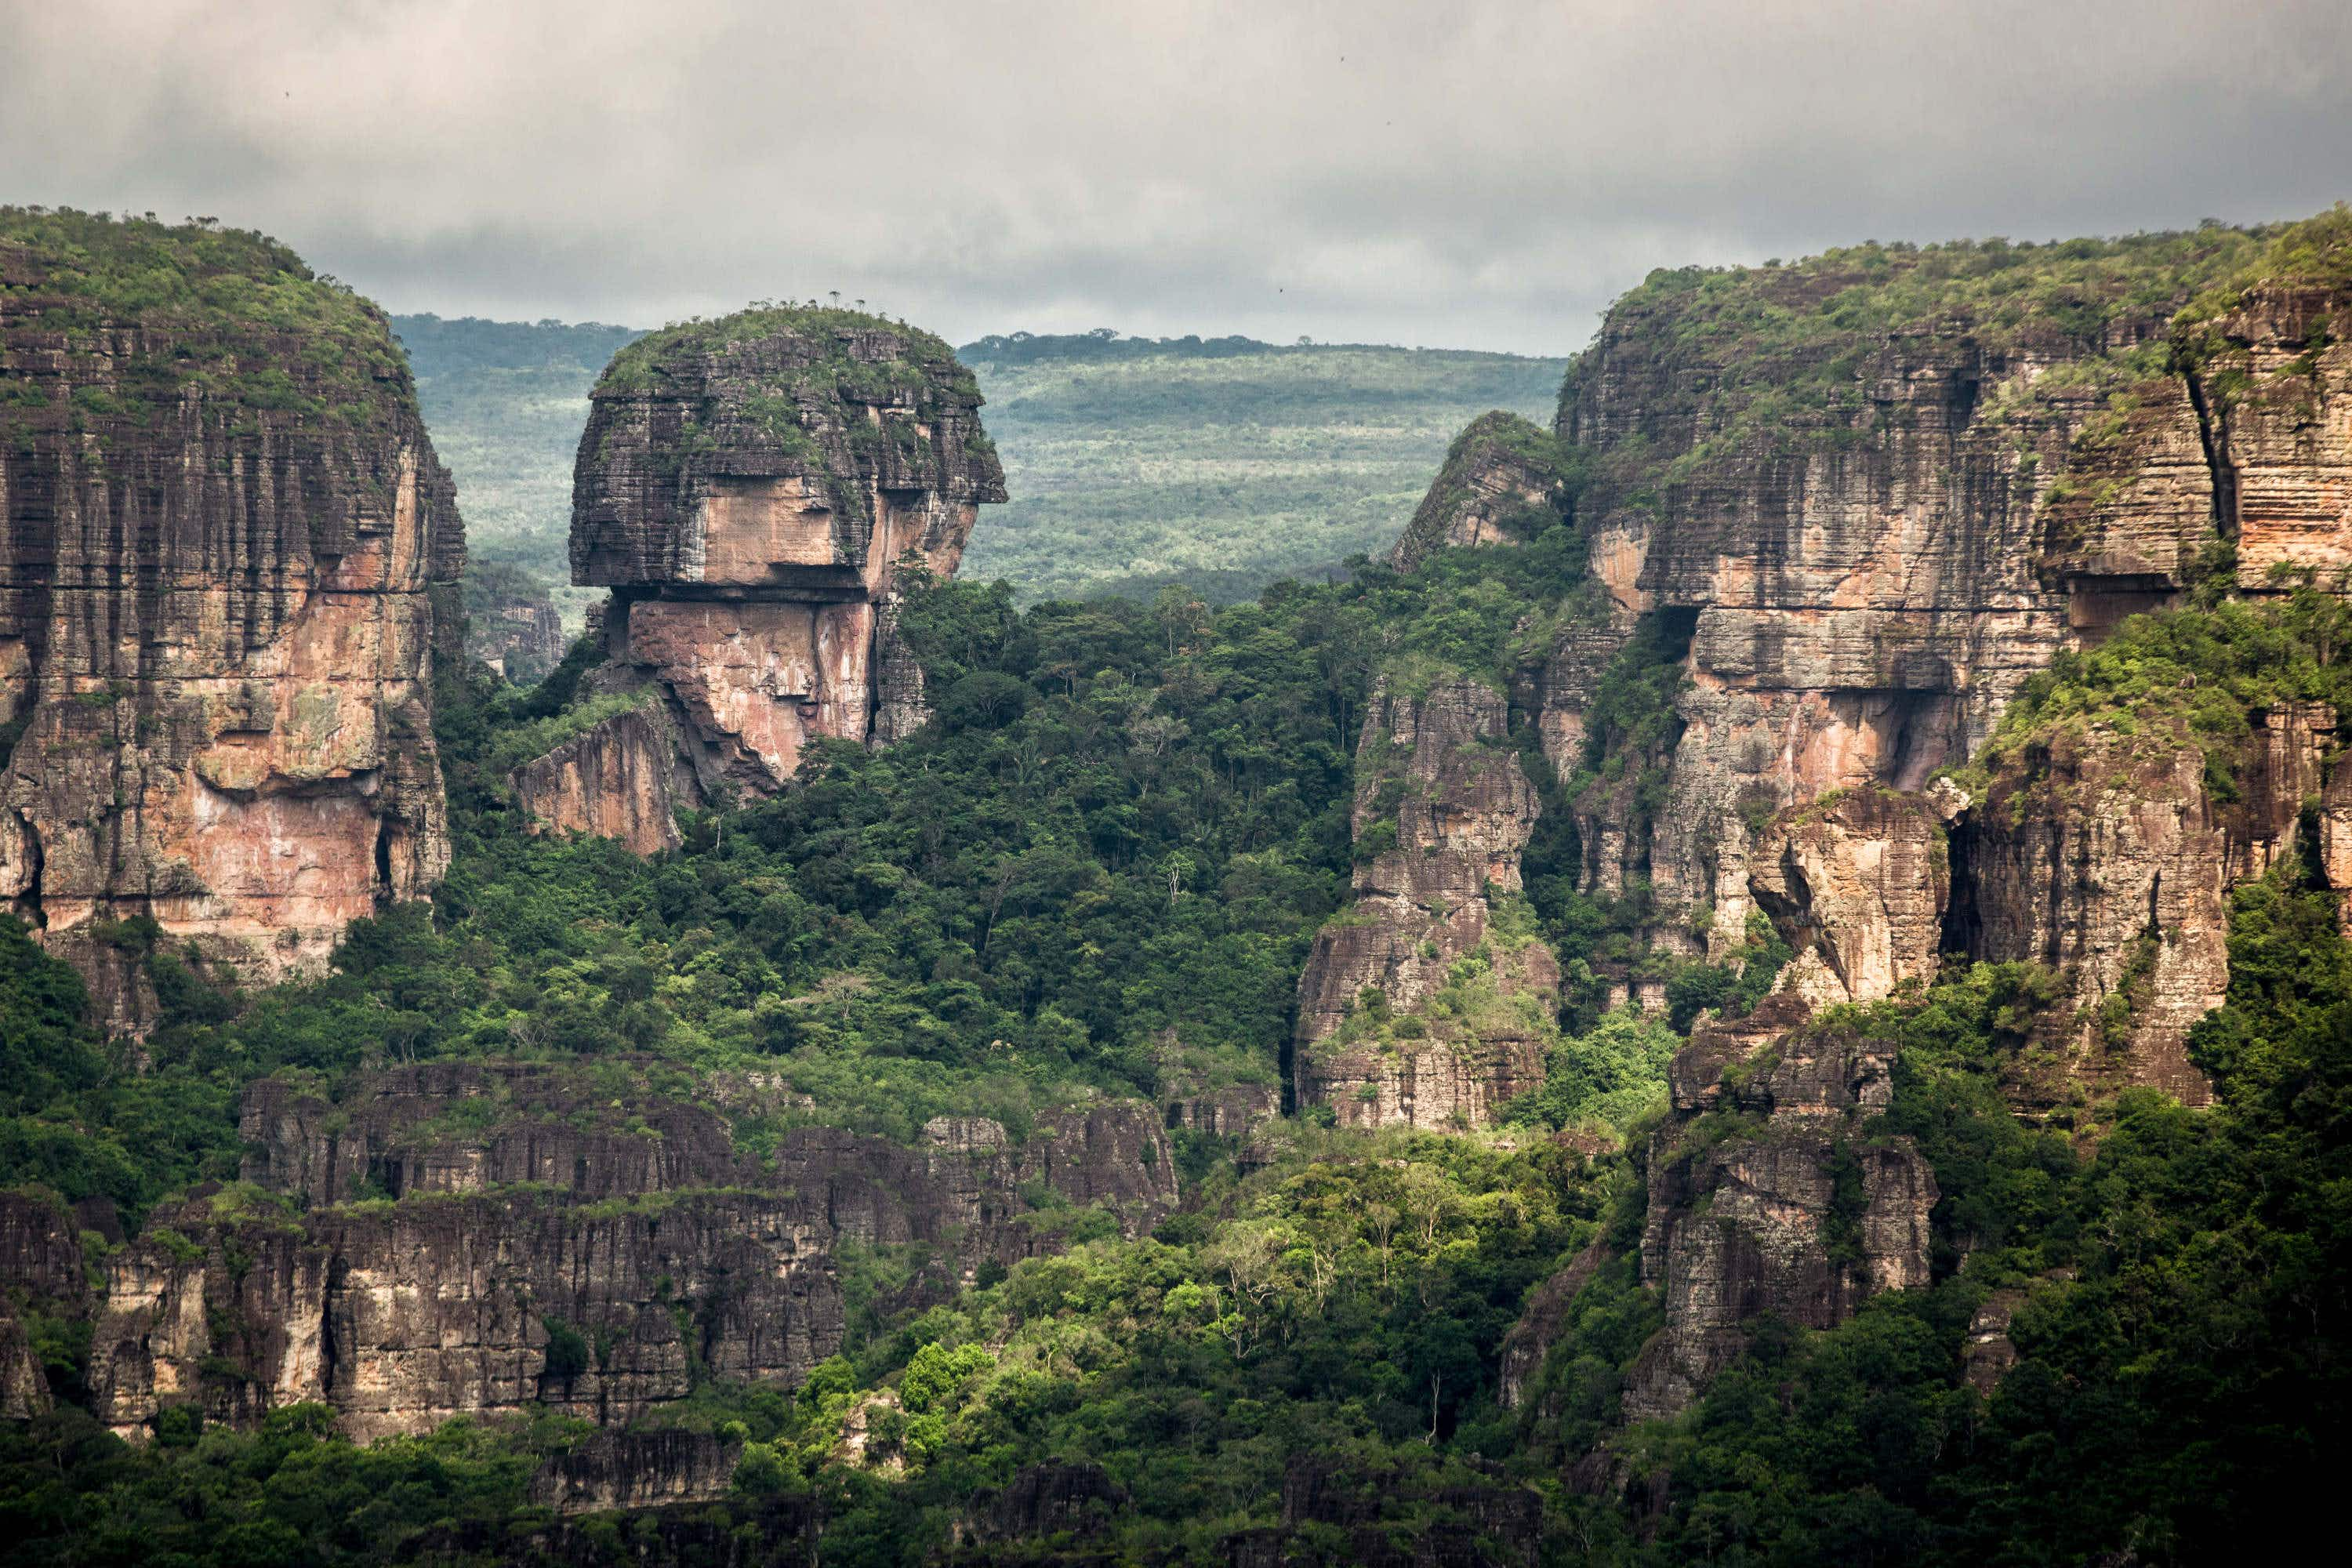 Colombia now has the world's largest tropical rainforest national park